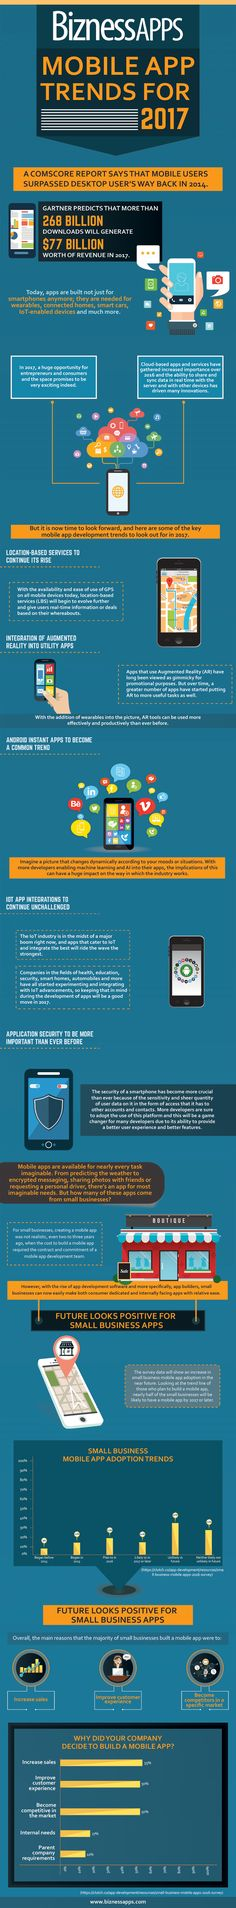 Most Important Trends For Mobile Apps To Watch In 2017 - #infographic